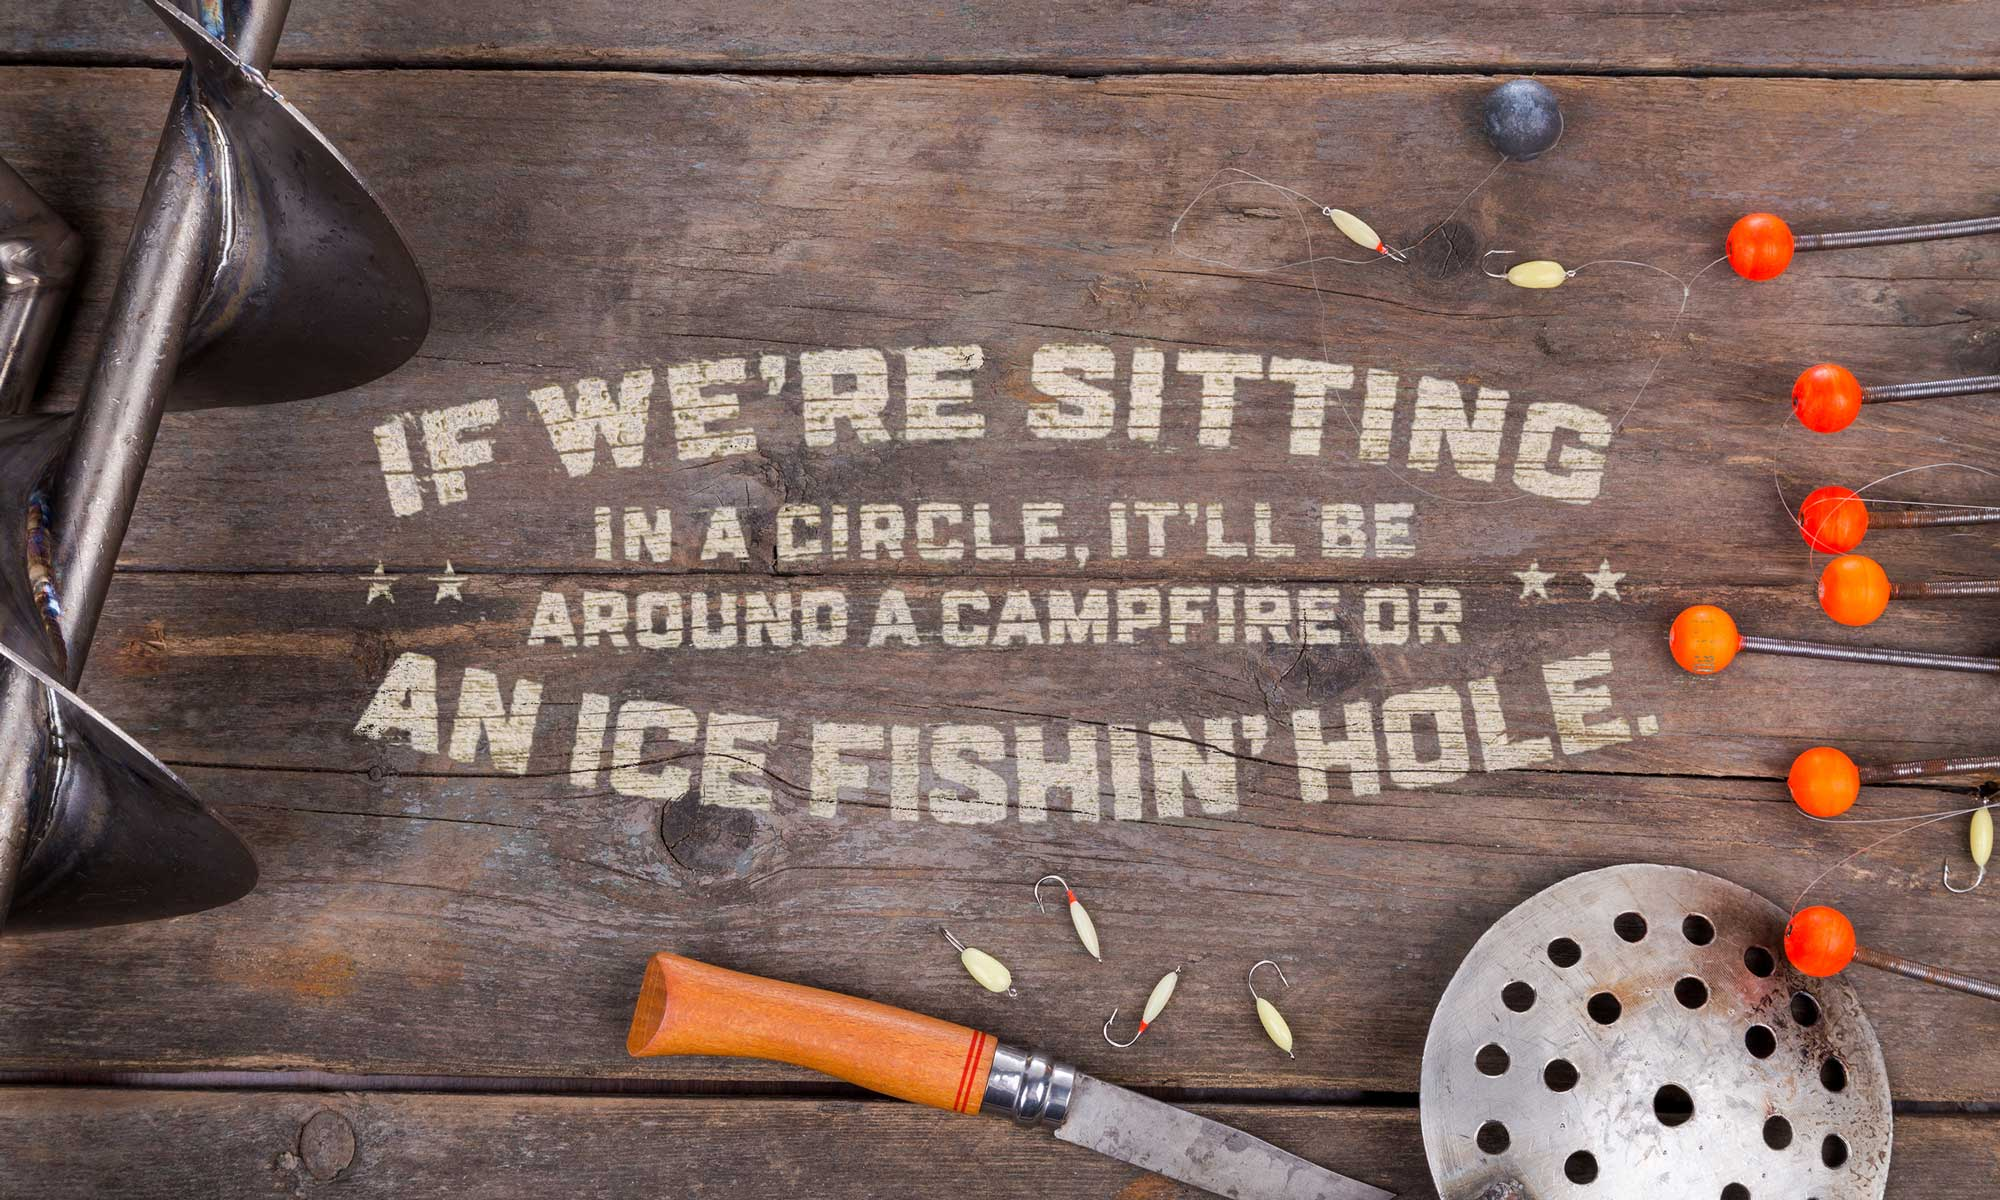 If we're sitting in a circle, it'll be around a campfire or an ice fishin' hole.